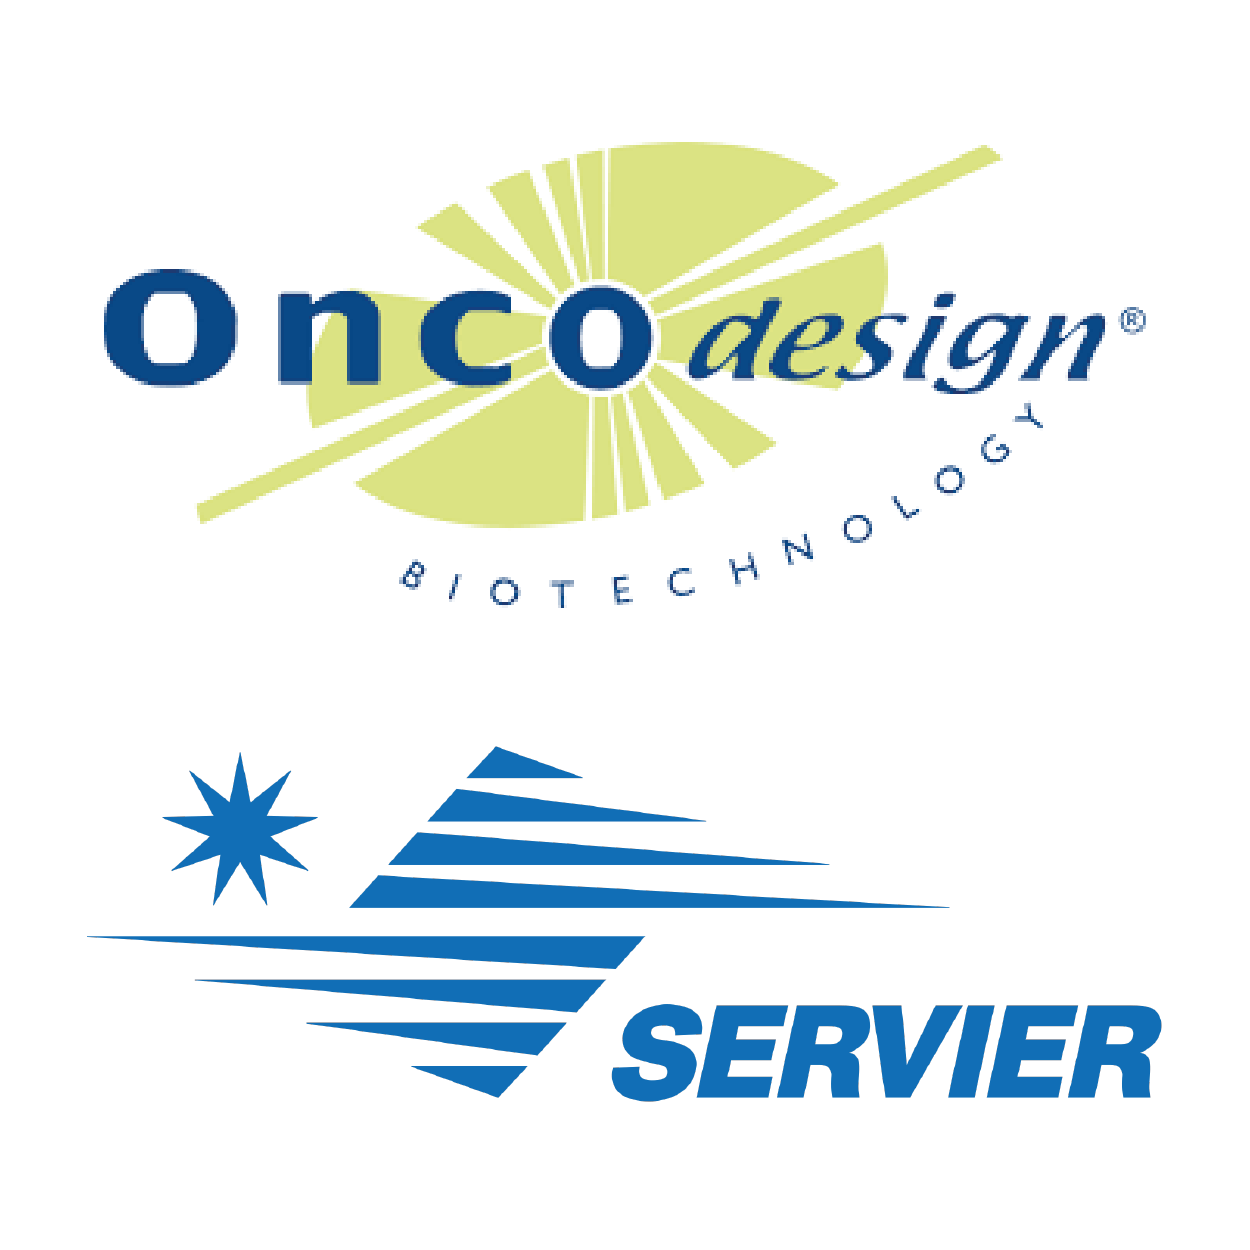 Oncodesign and Servier